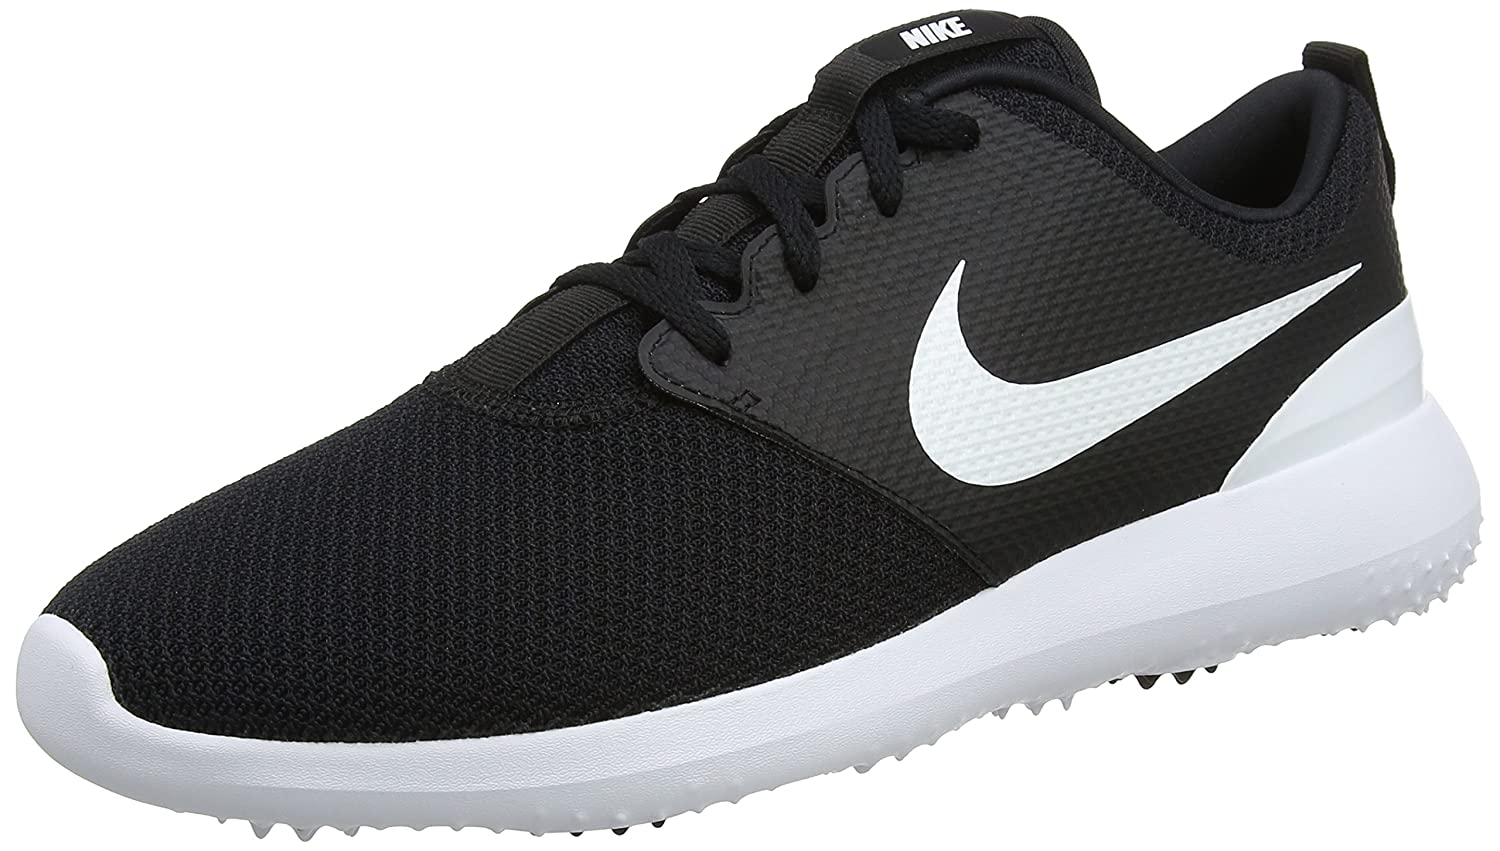 on sale 3bcd0 28e13 Amazon.com   Nike Men s Roshe G Premium Golf Shoes   Road Running